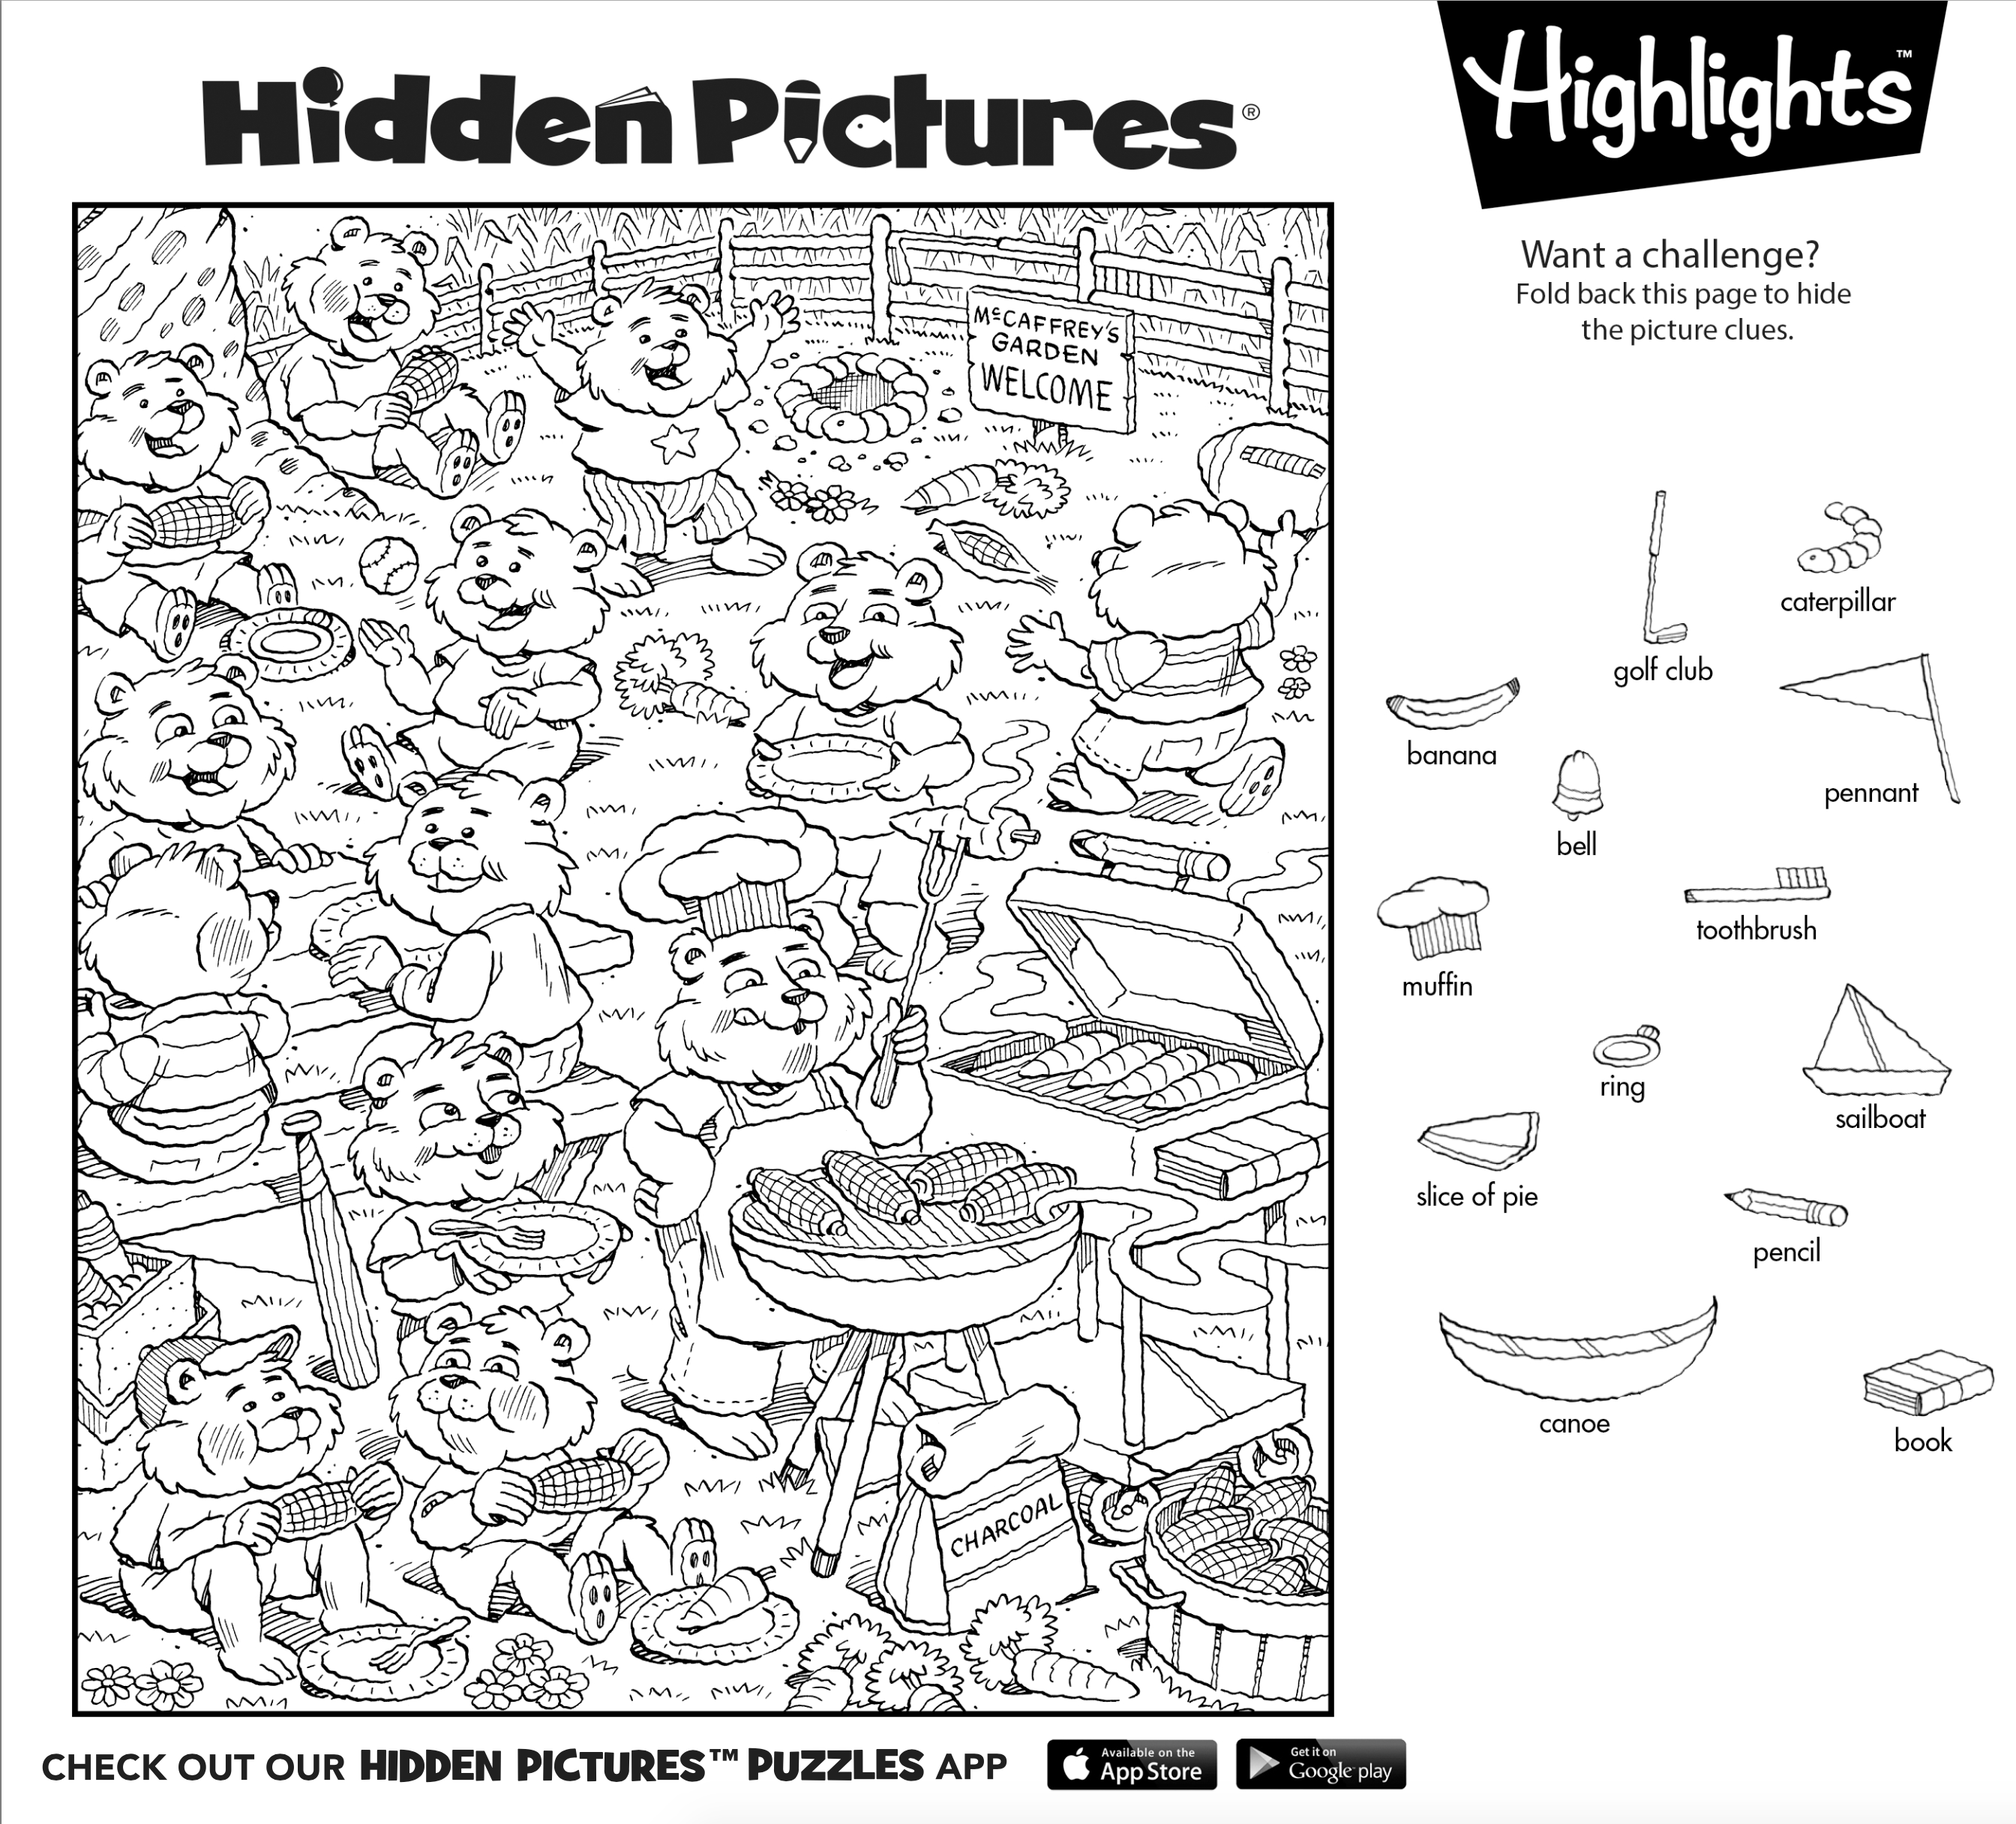 photograph about Hidden Pictures Free Printable called Can yourself locate all 13 concealed items inside of this Concealed Photos